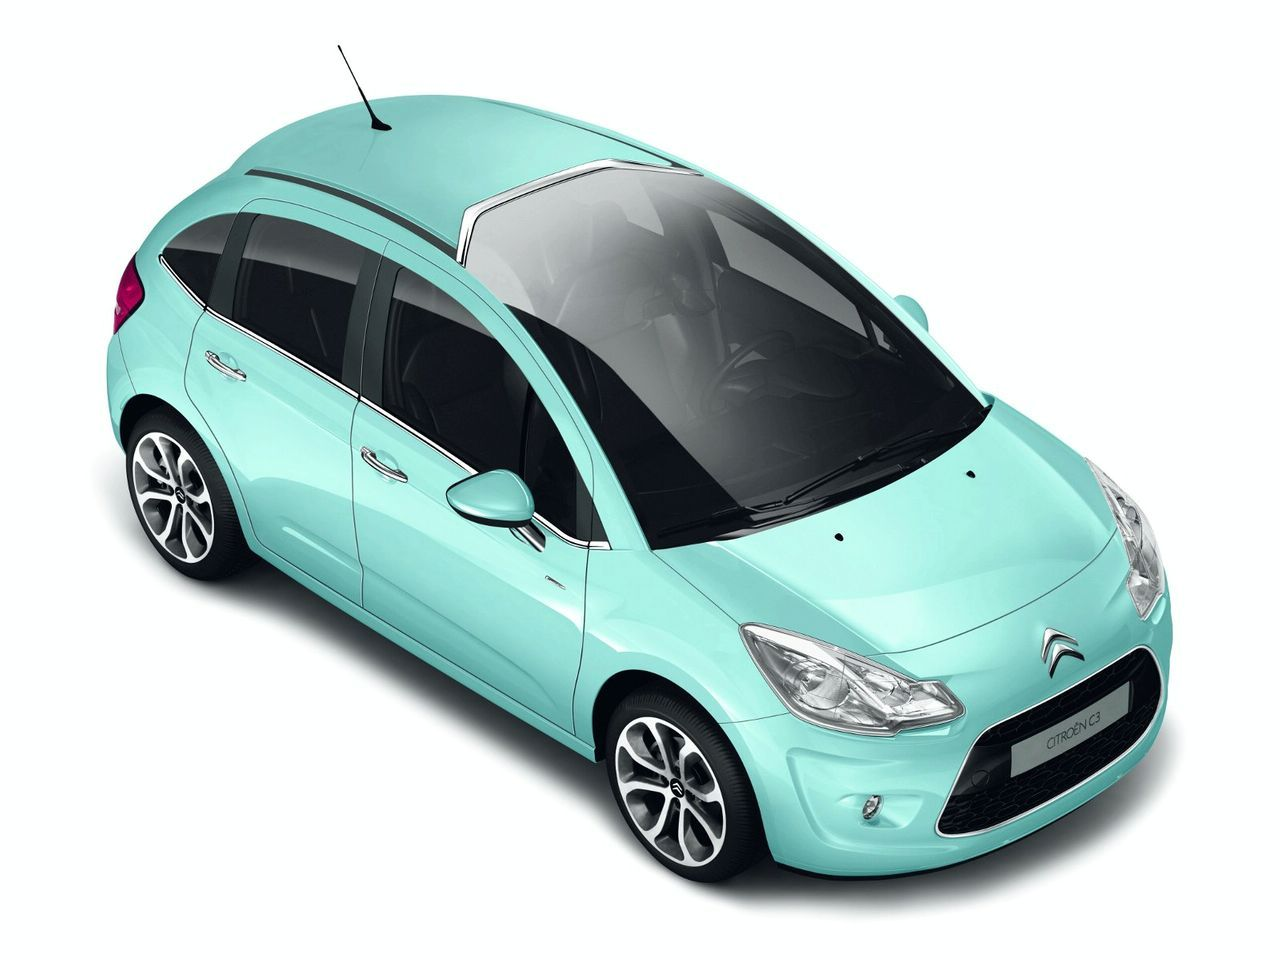 2010 Citroen C3 Best Car